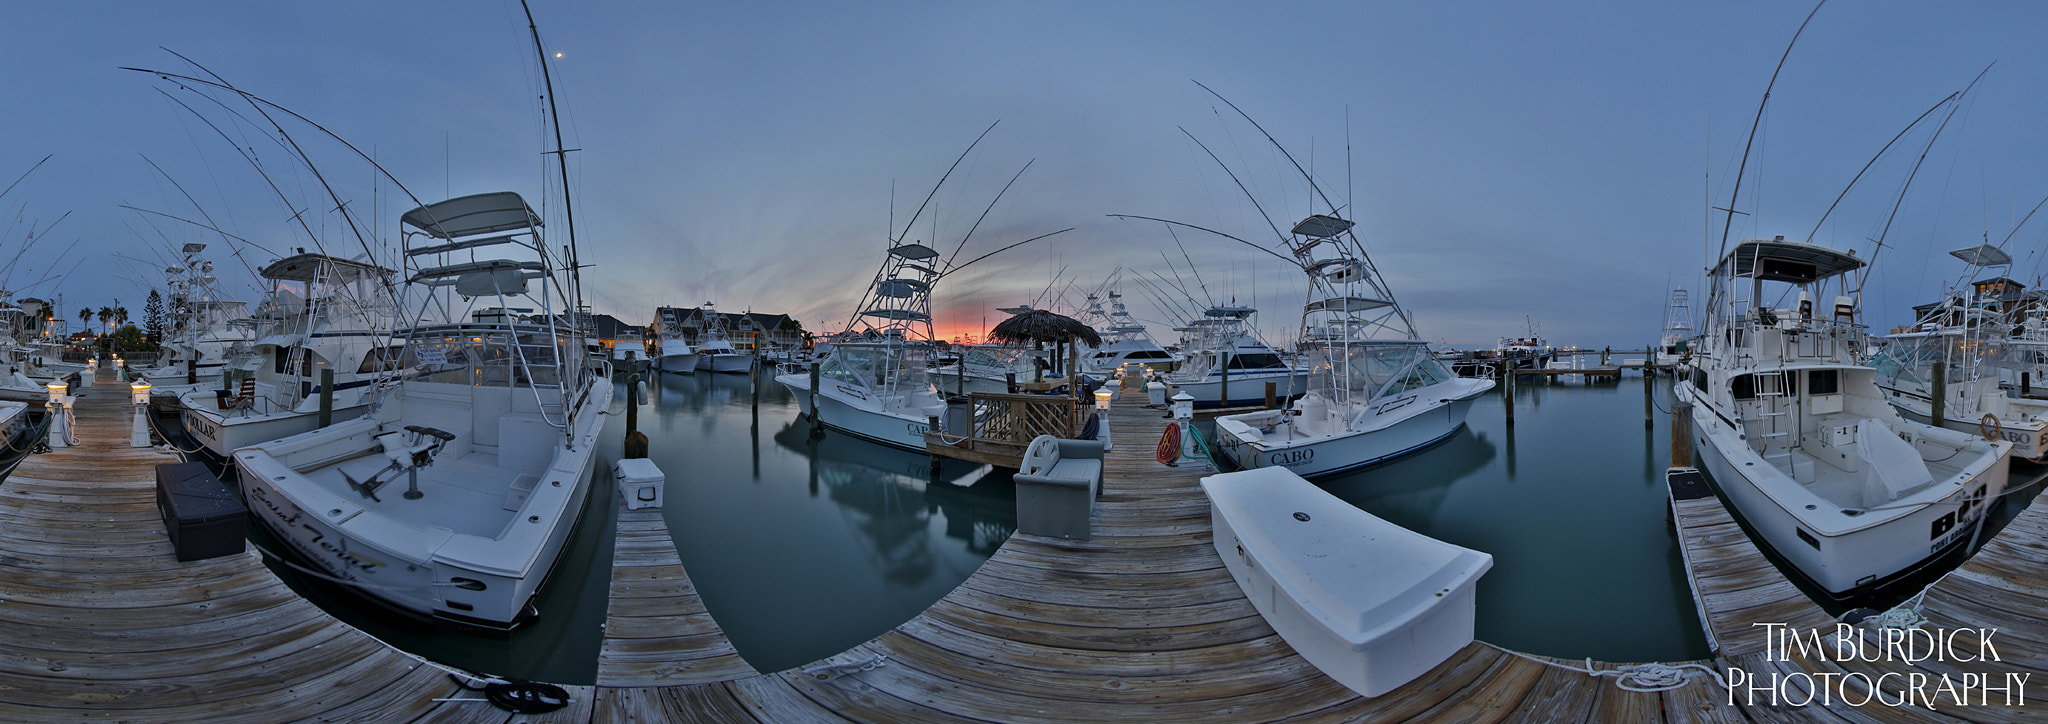 Photograph Virginia's on the Bay Sunset by Tim Burdick on 500px